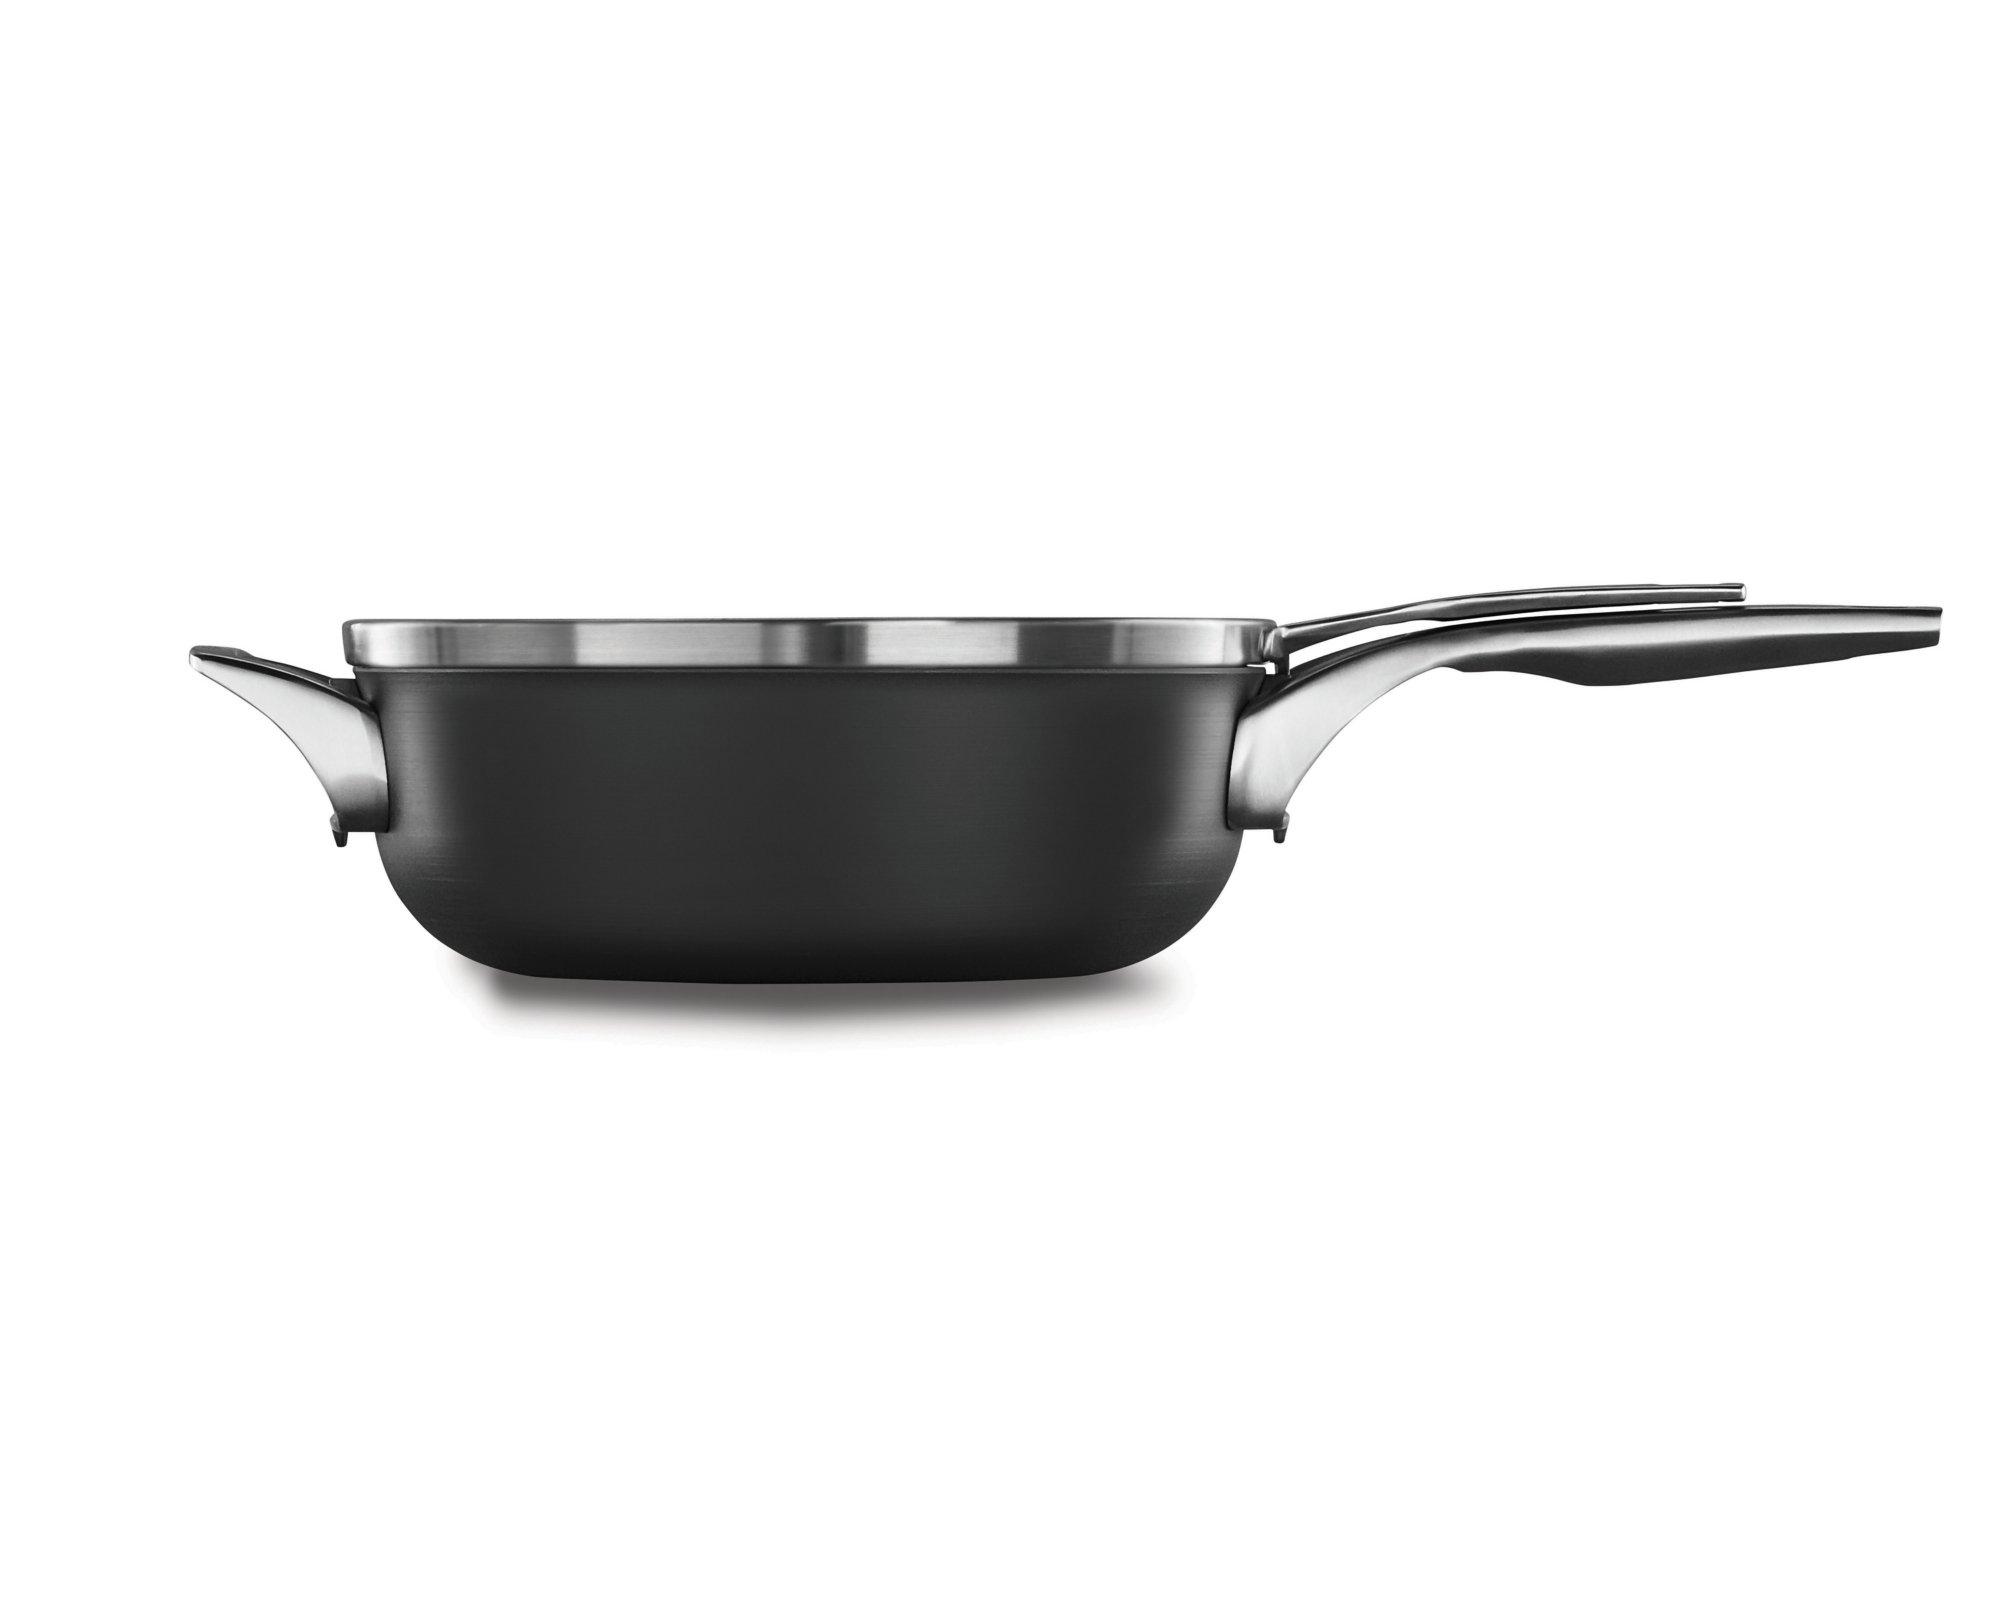 Calphalon Premier? Space Saving Hard Anodized Nonstick 4 qt. Chef's Pan with Cover